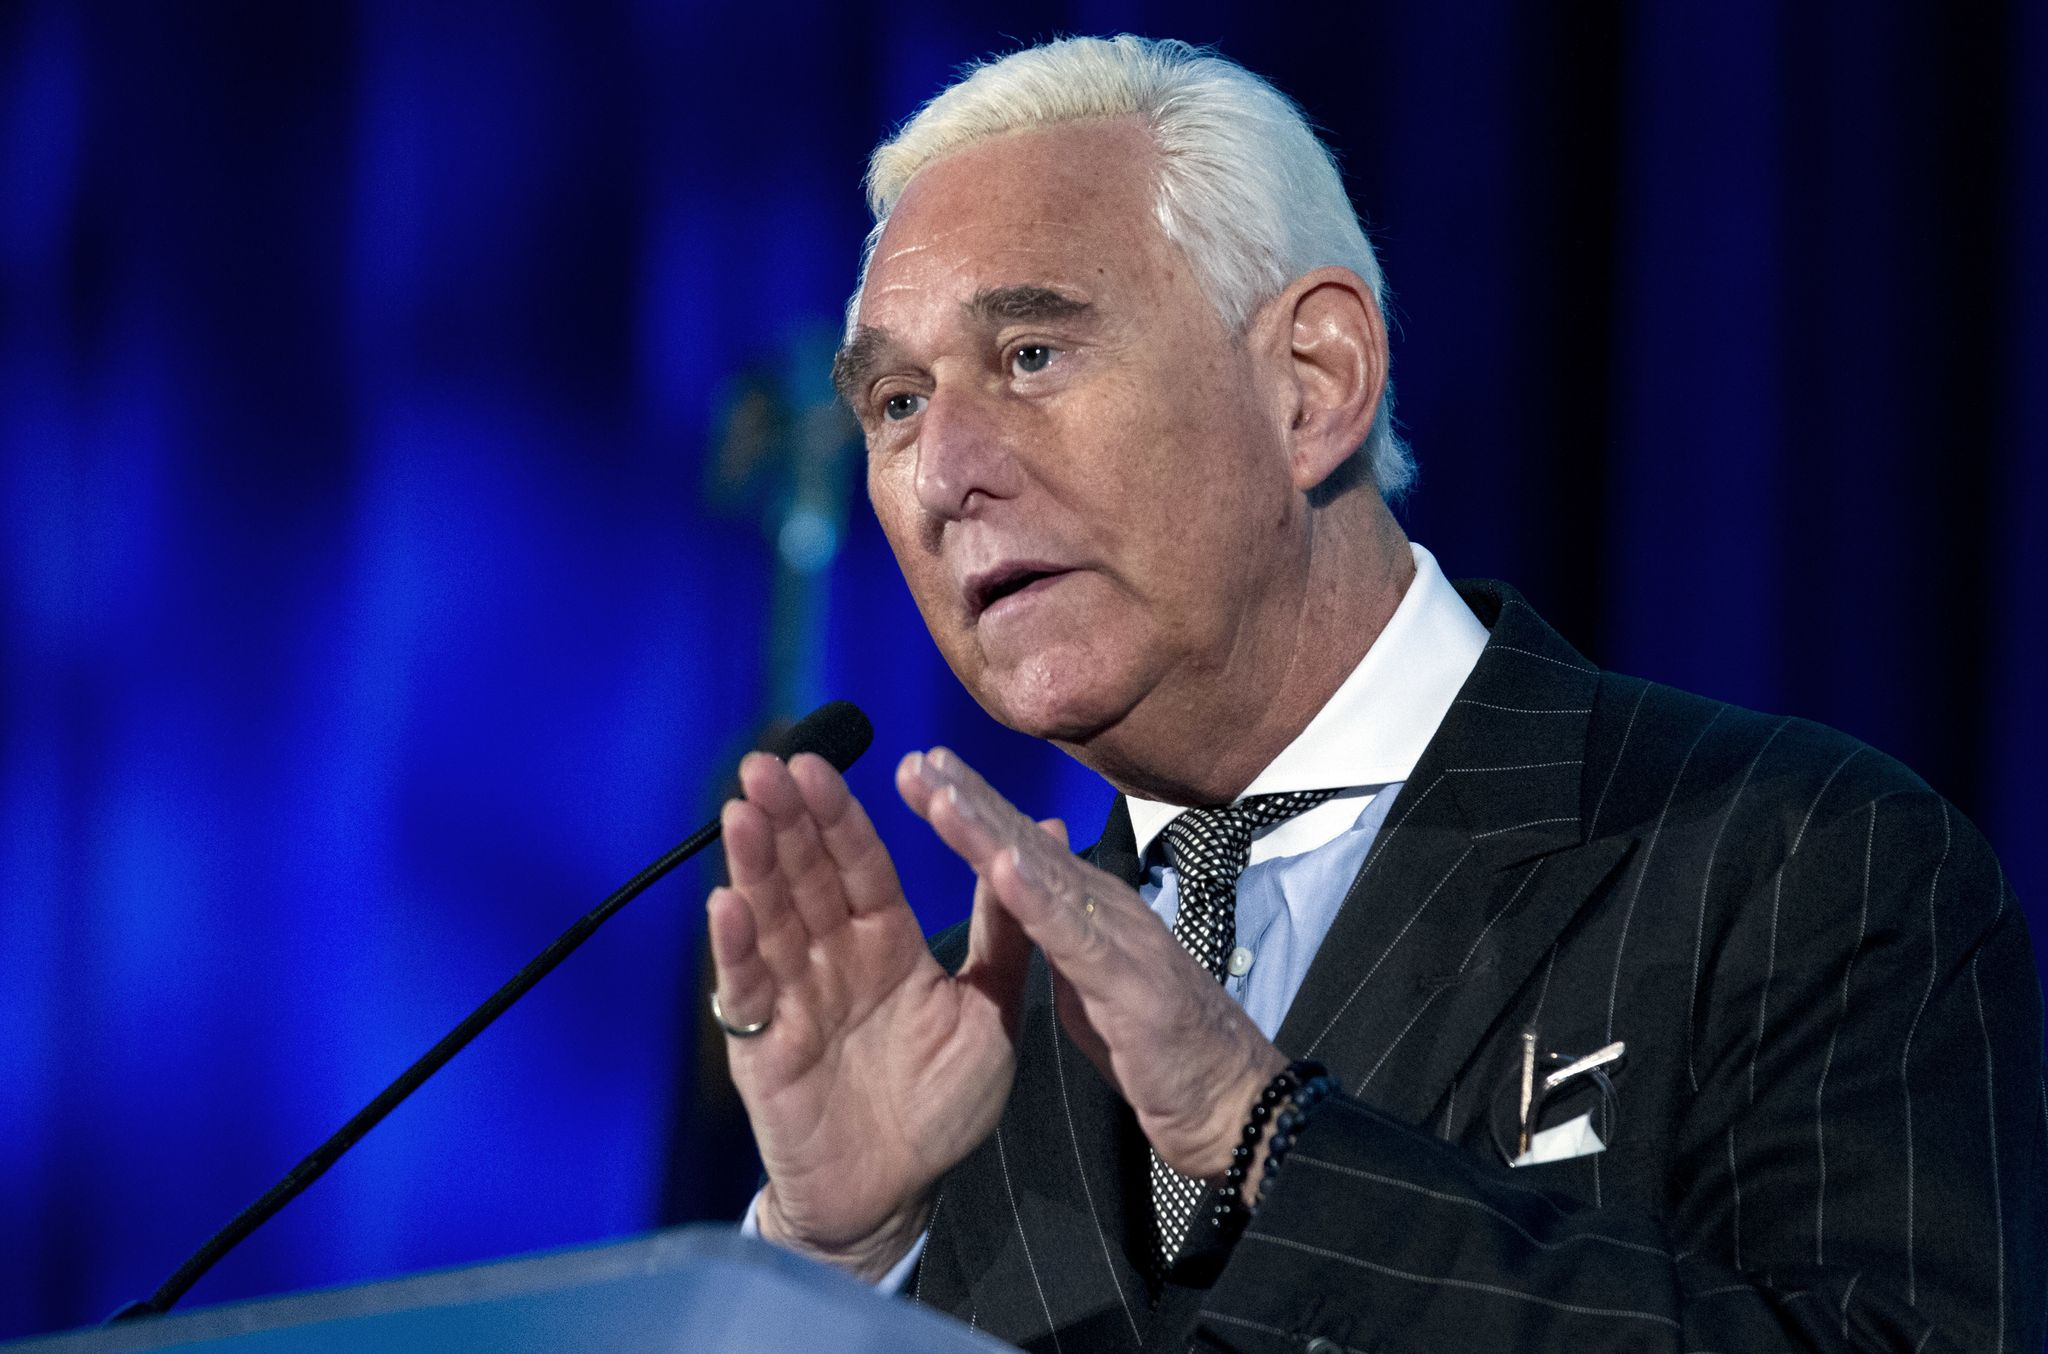 Roger Stone, ex-Trump adviser, snubs requests from Senate panels to testify about 2016 race: Report